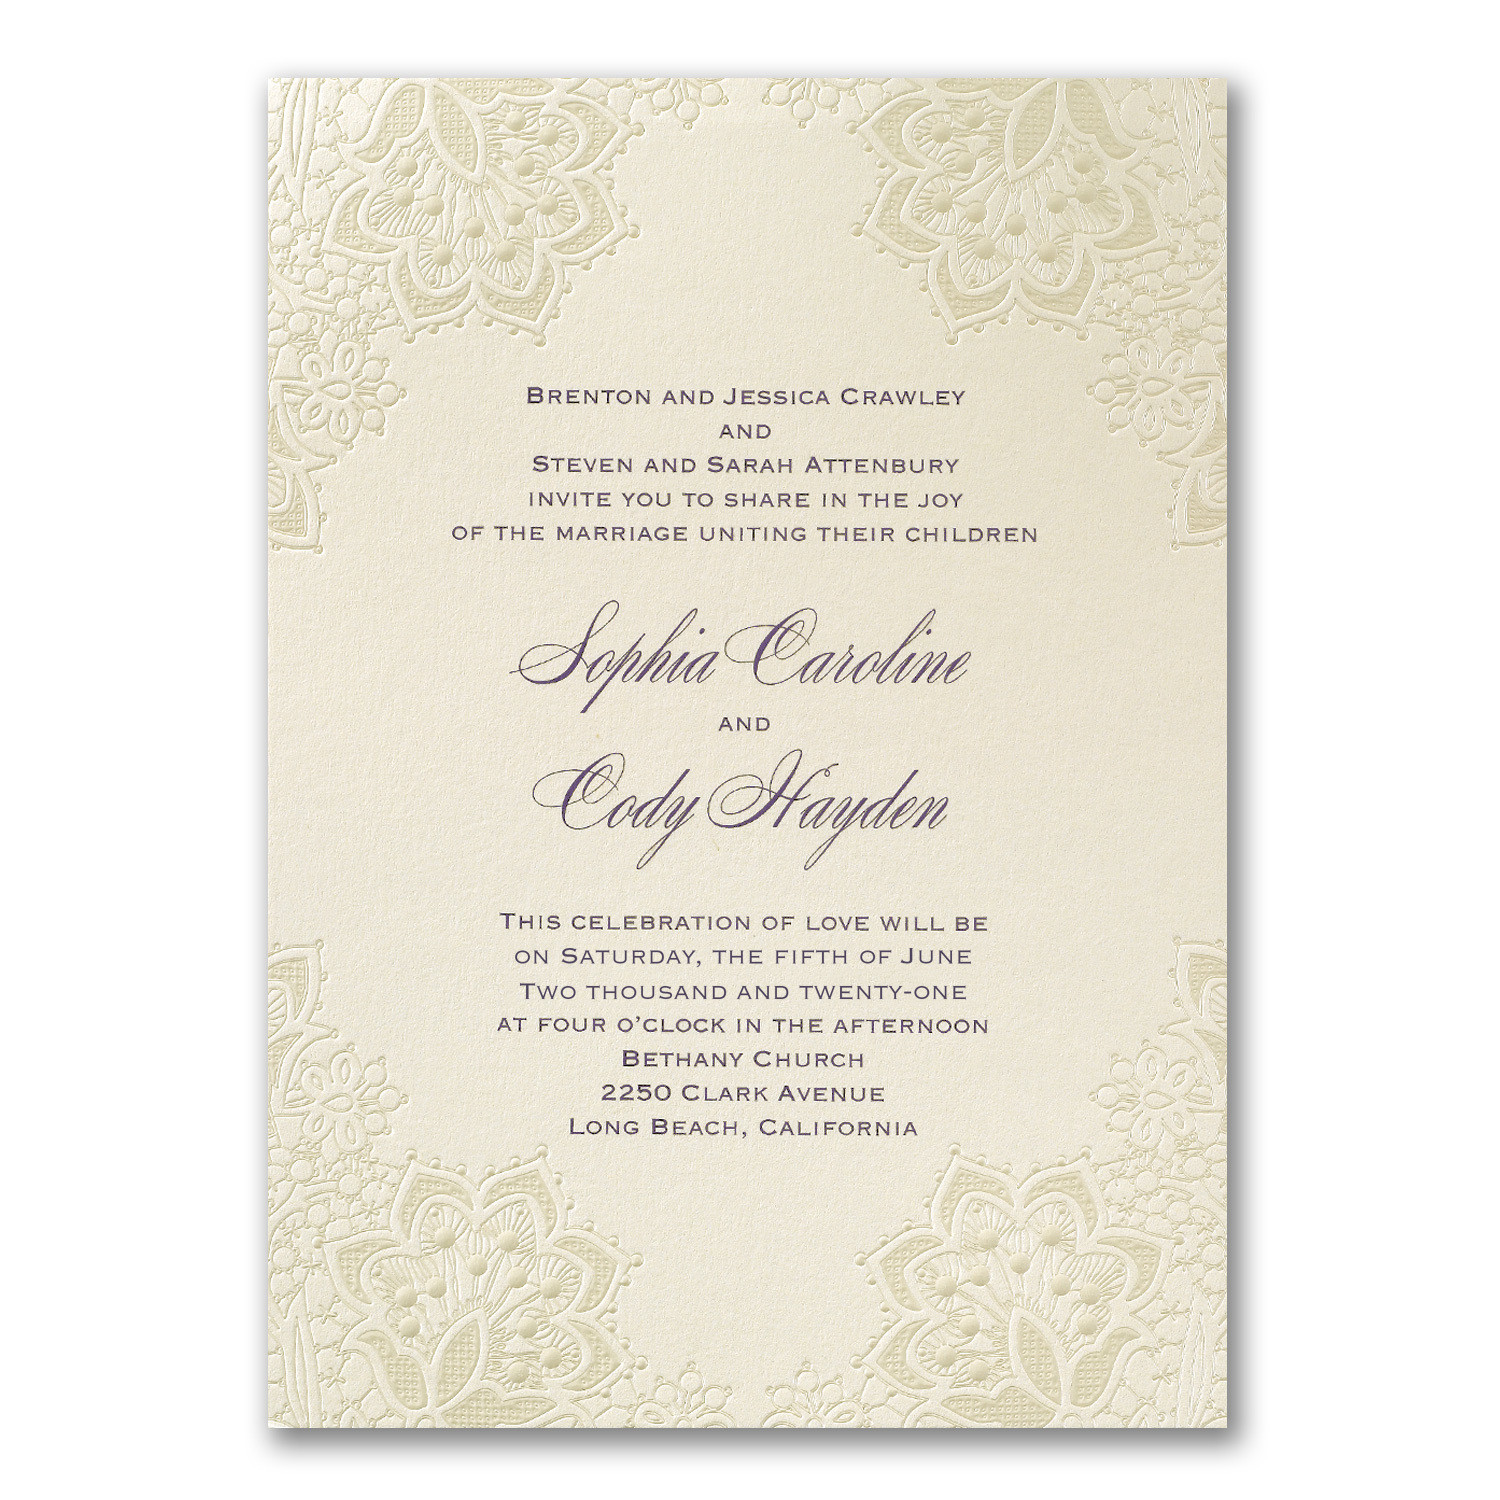 Wedding invitation with pearl shimmer